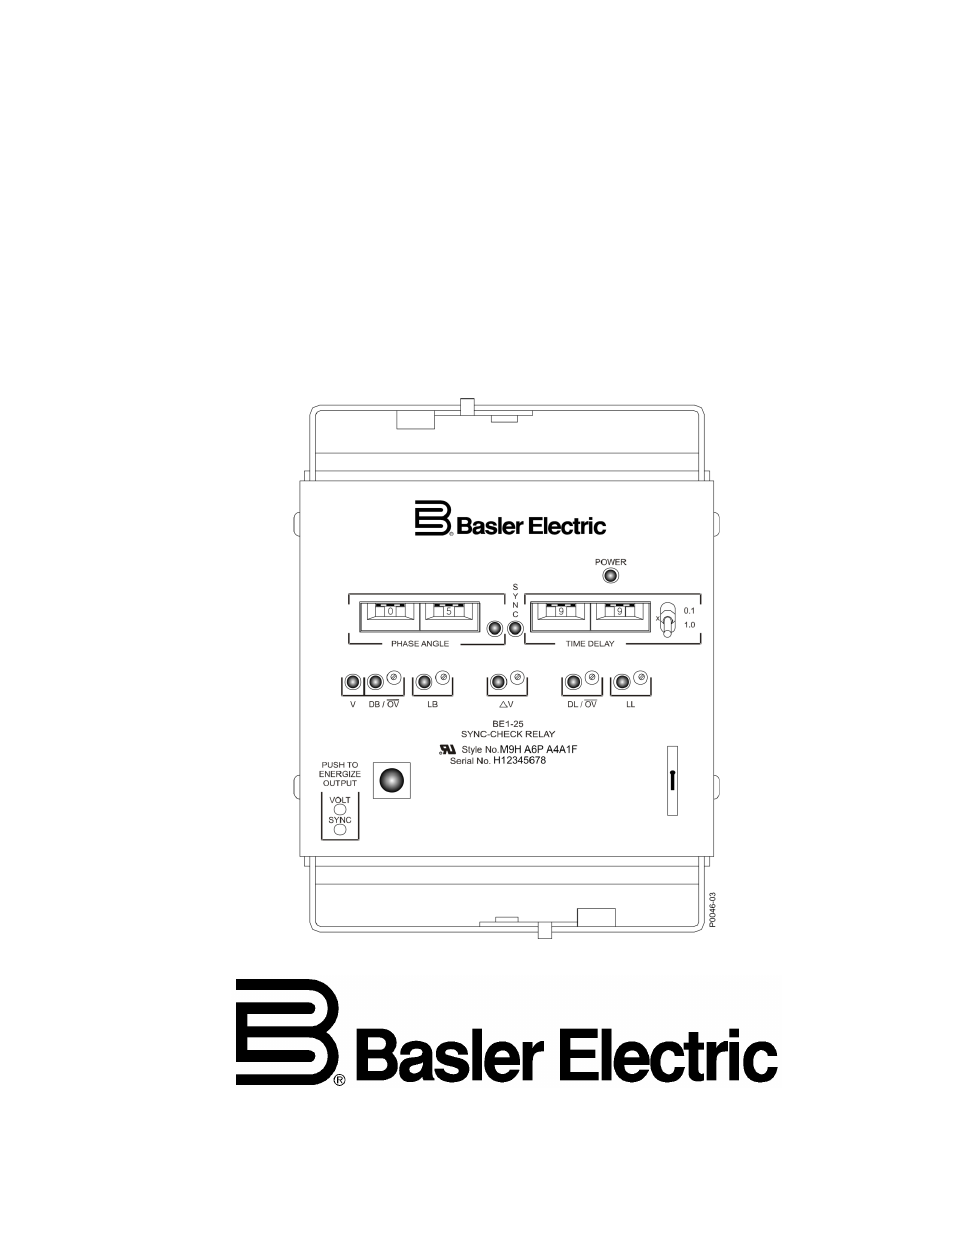 basler electric be1